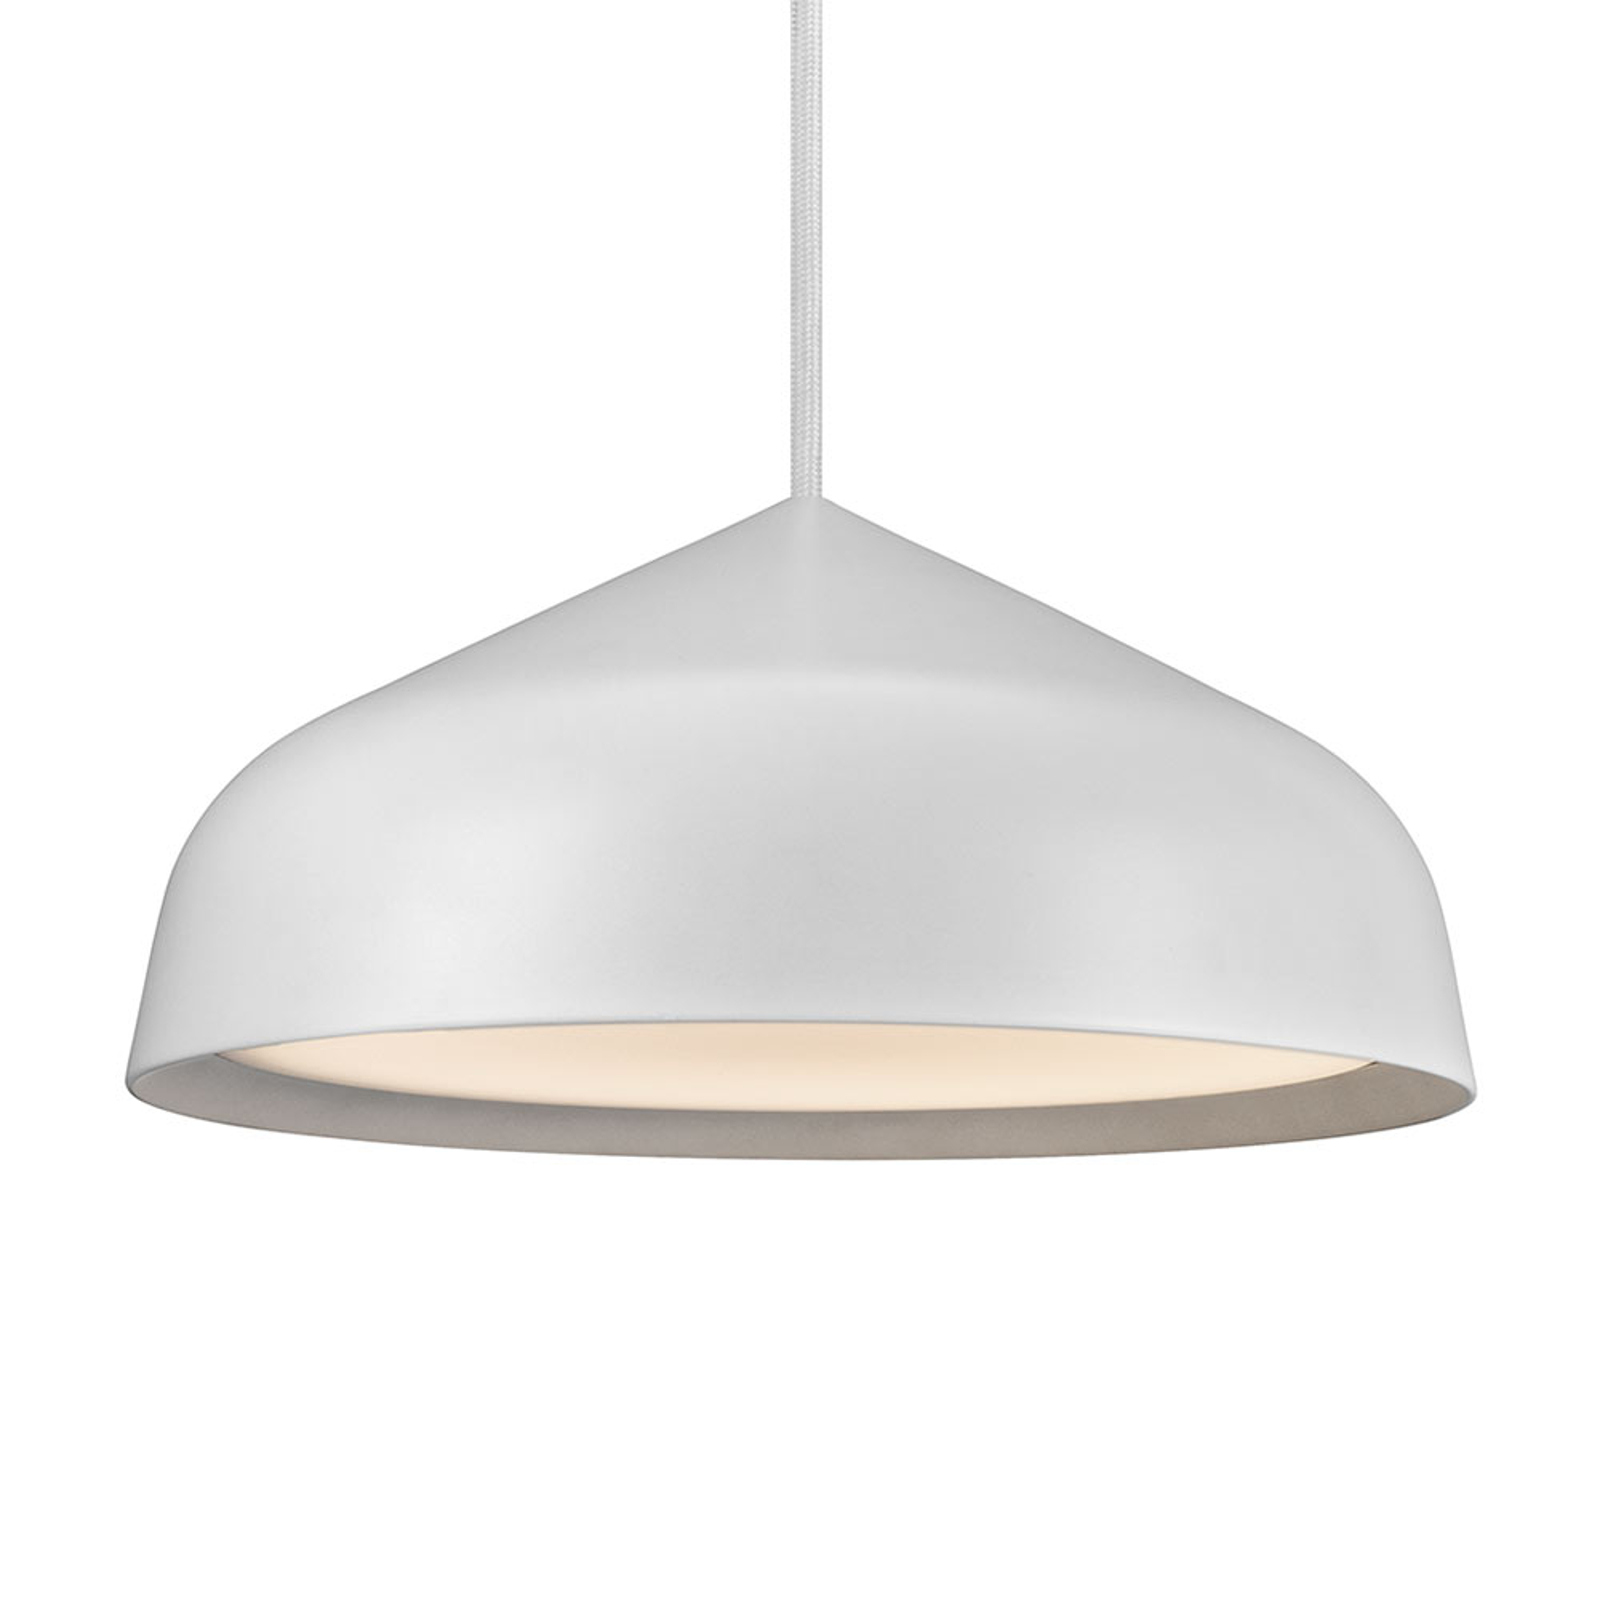 Suspension LED Fura, 25 cm, blanche